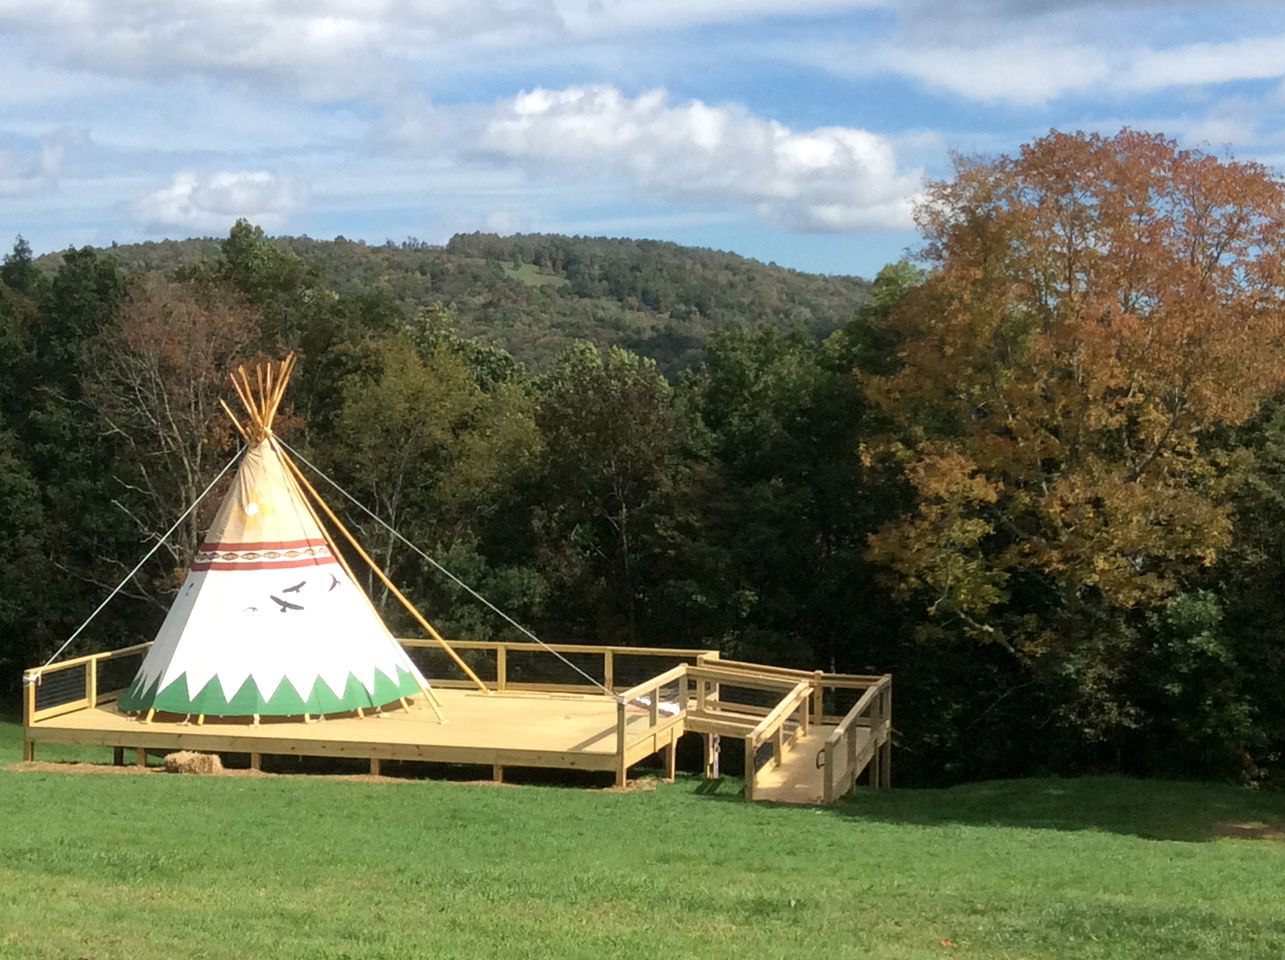 Glamping NC: Tipi rental in the Blue Ridge Mountains